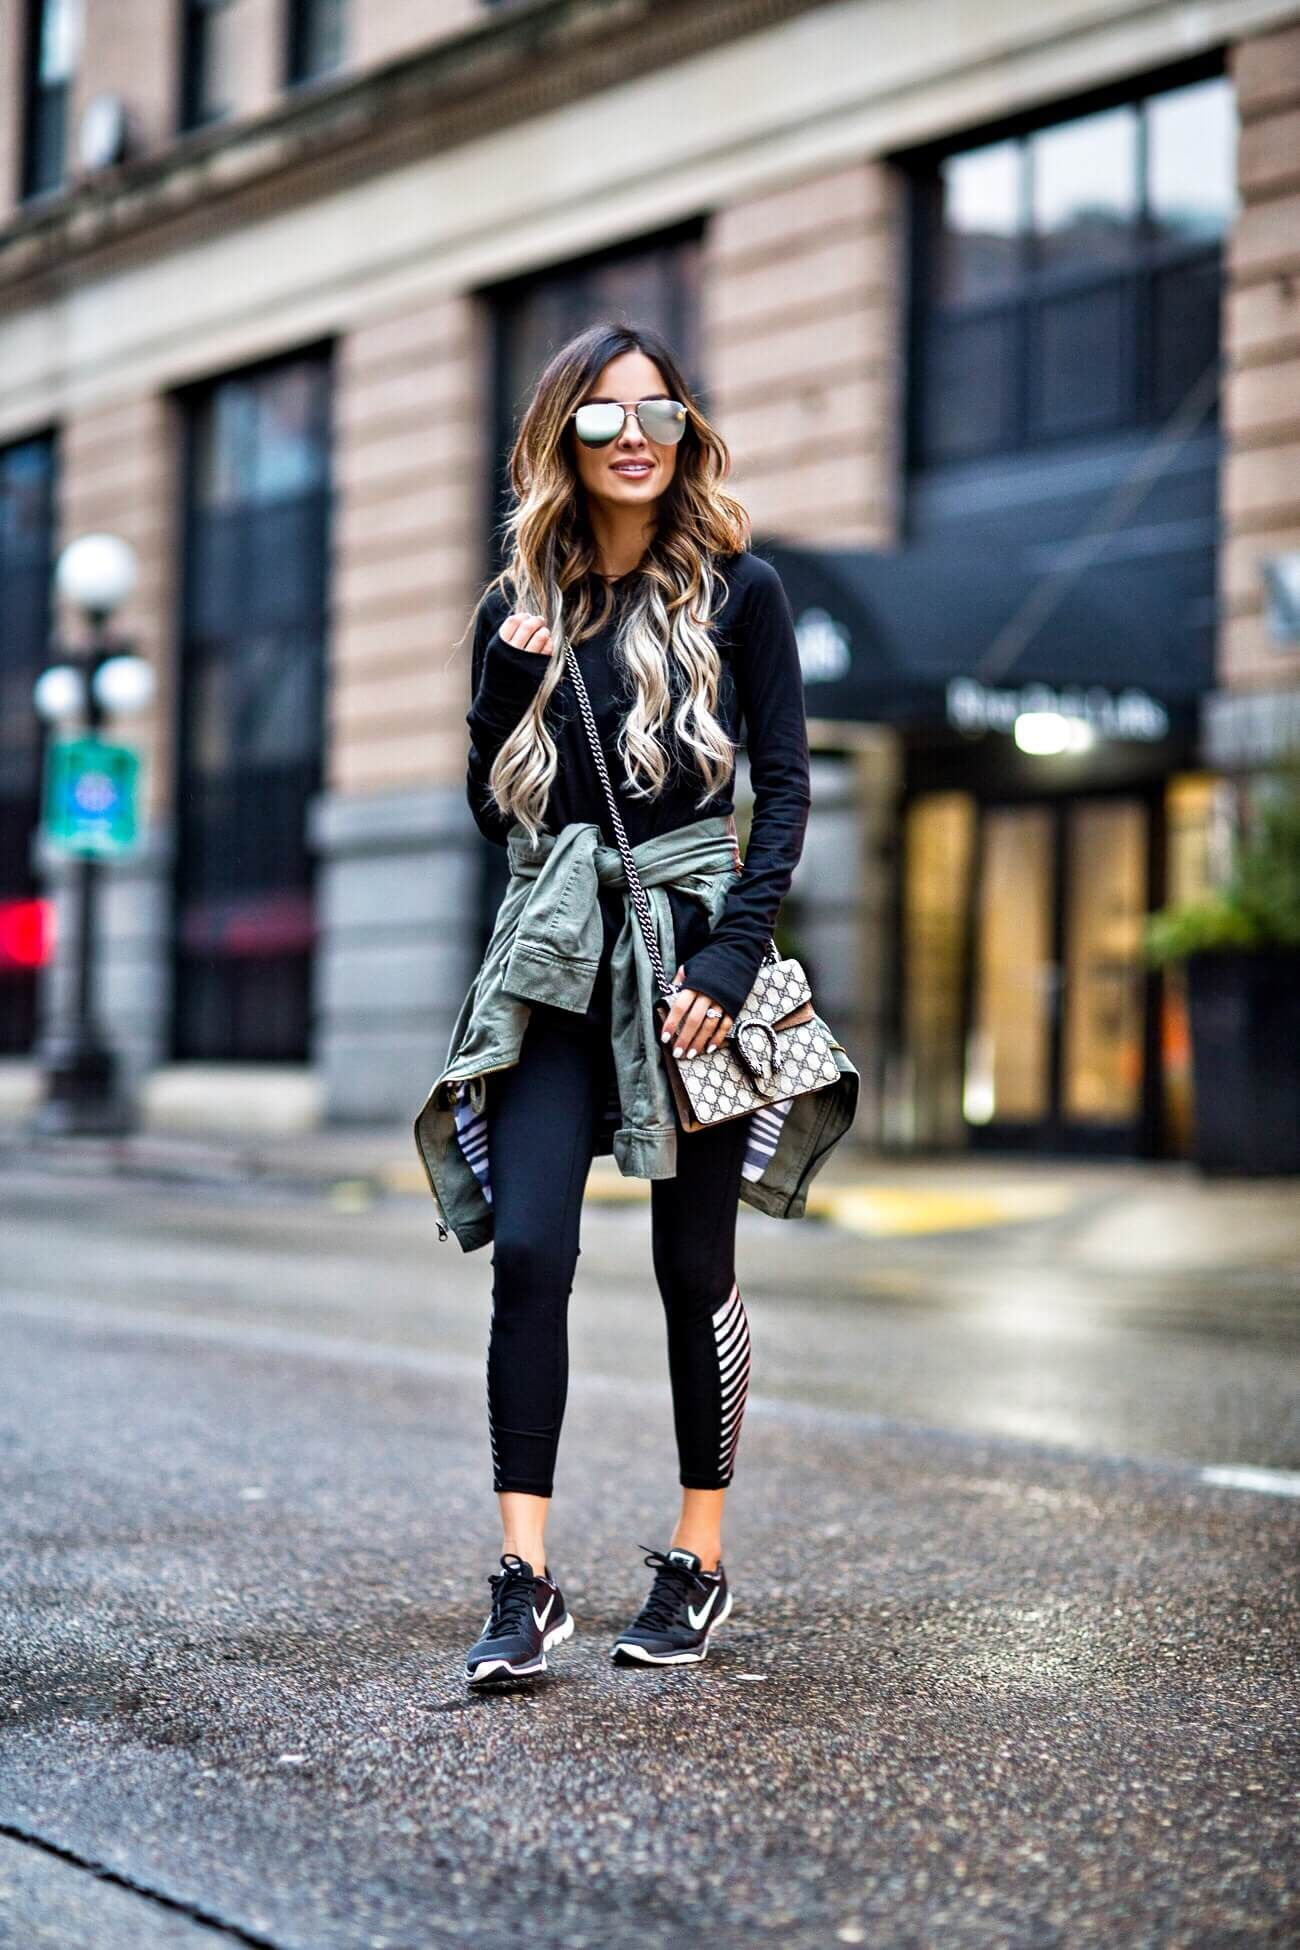 befe99629082 fashion blogger mia mia mine wearing a gapfactory workout outfit ...